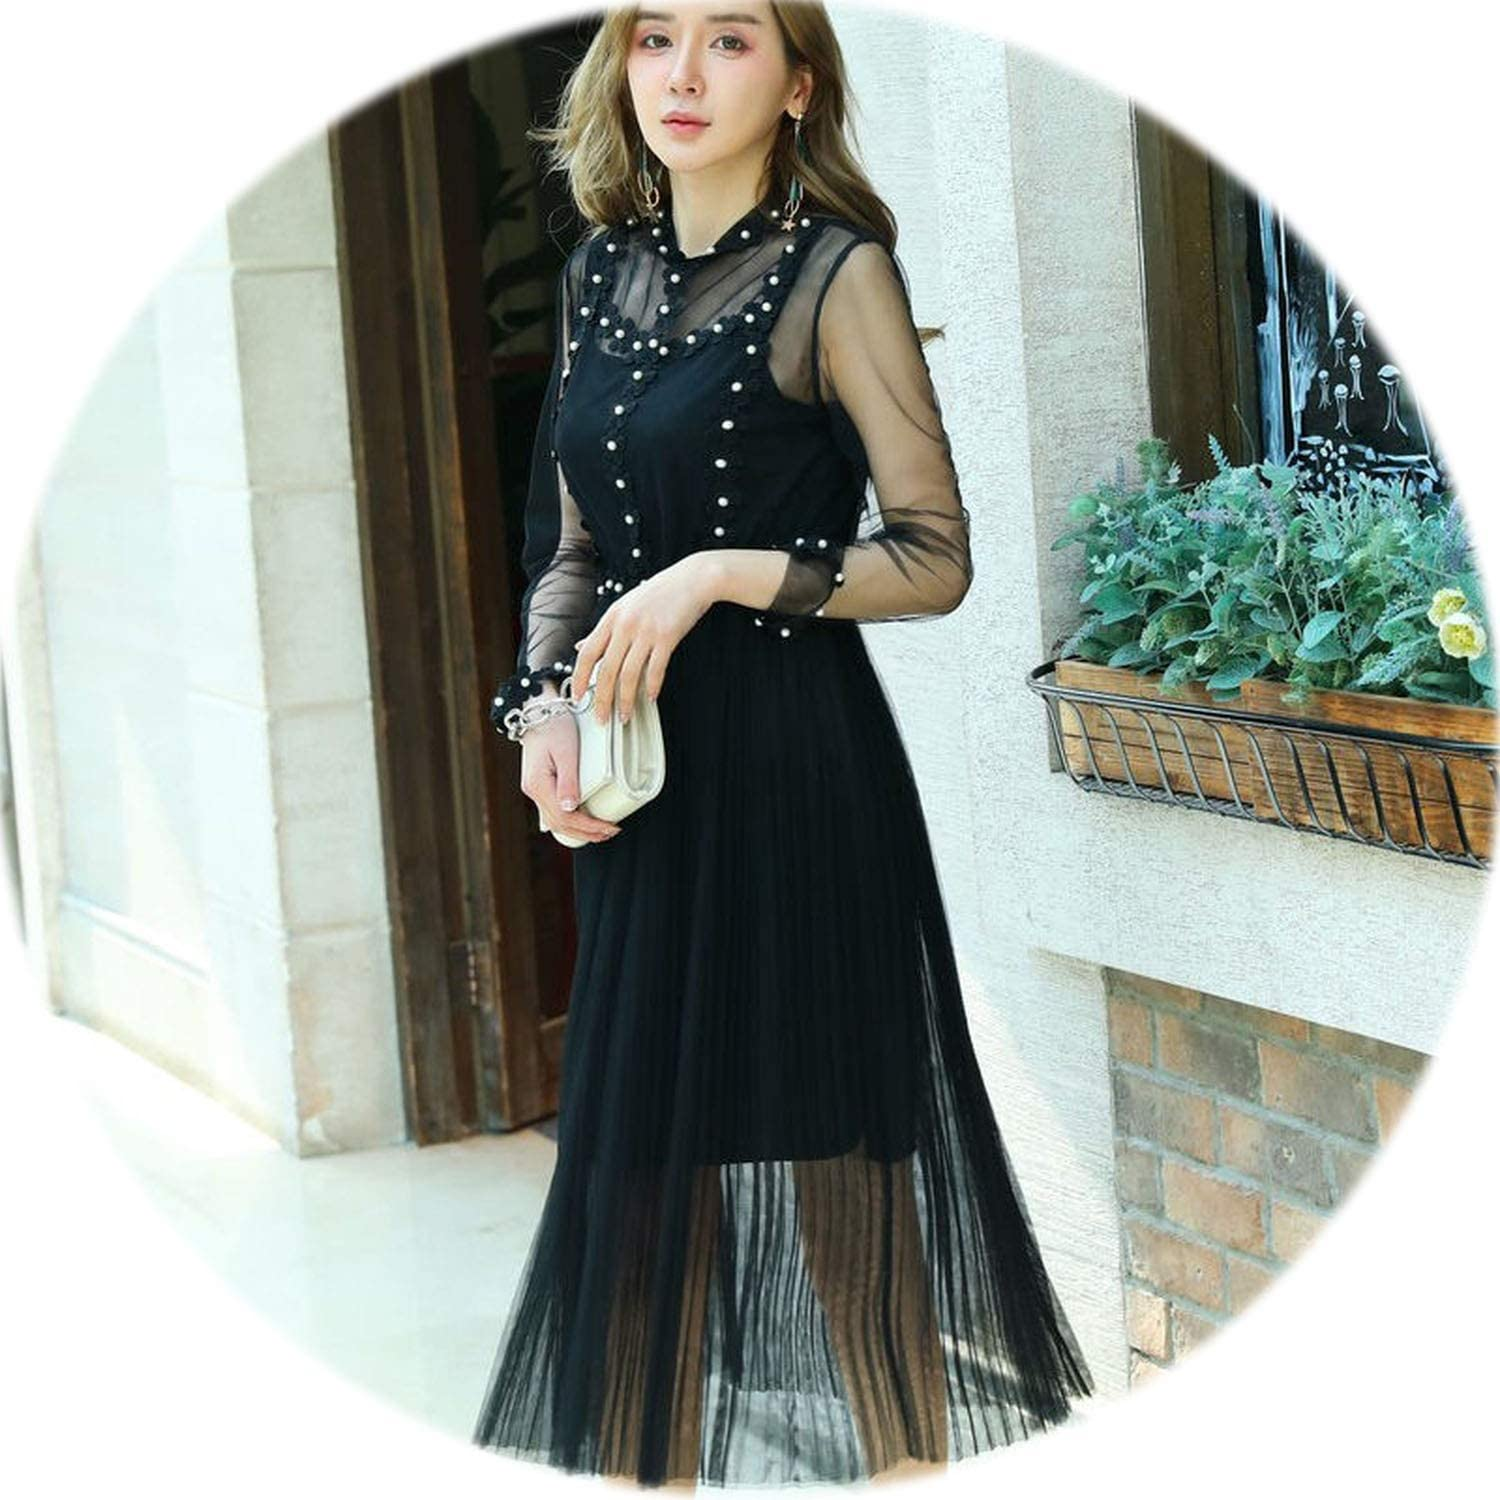 Rather be Elegant Flowers Pearls Lace Full Sleeve Long Sleeve High Waisted Mesh Transparent Sweet Party Dresses Vestidos